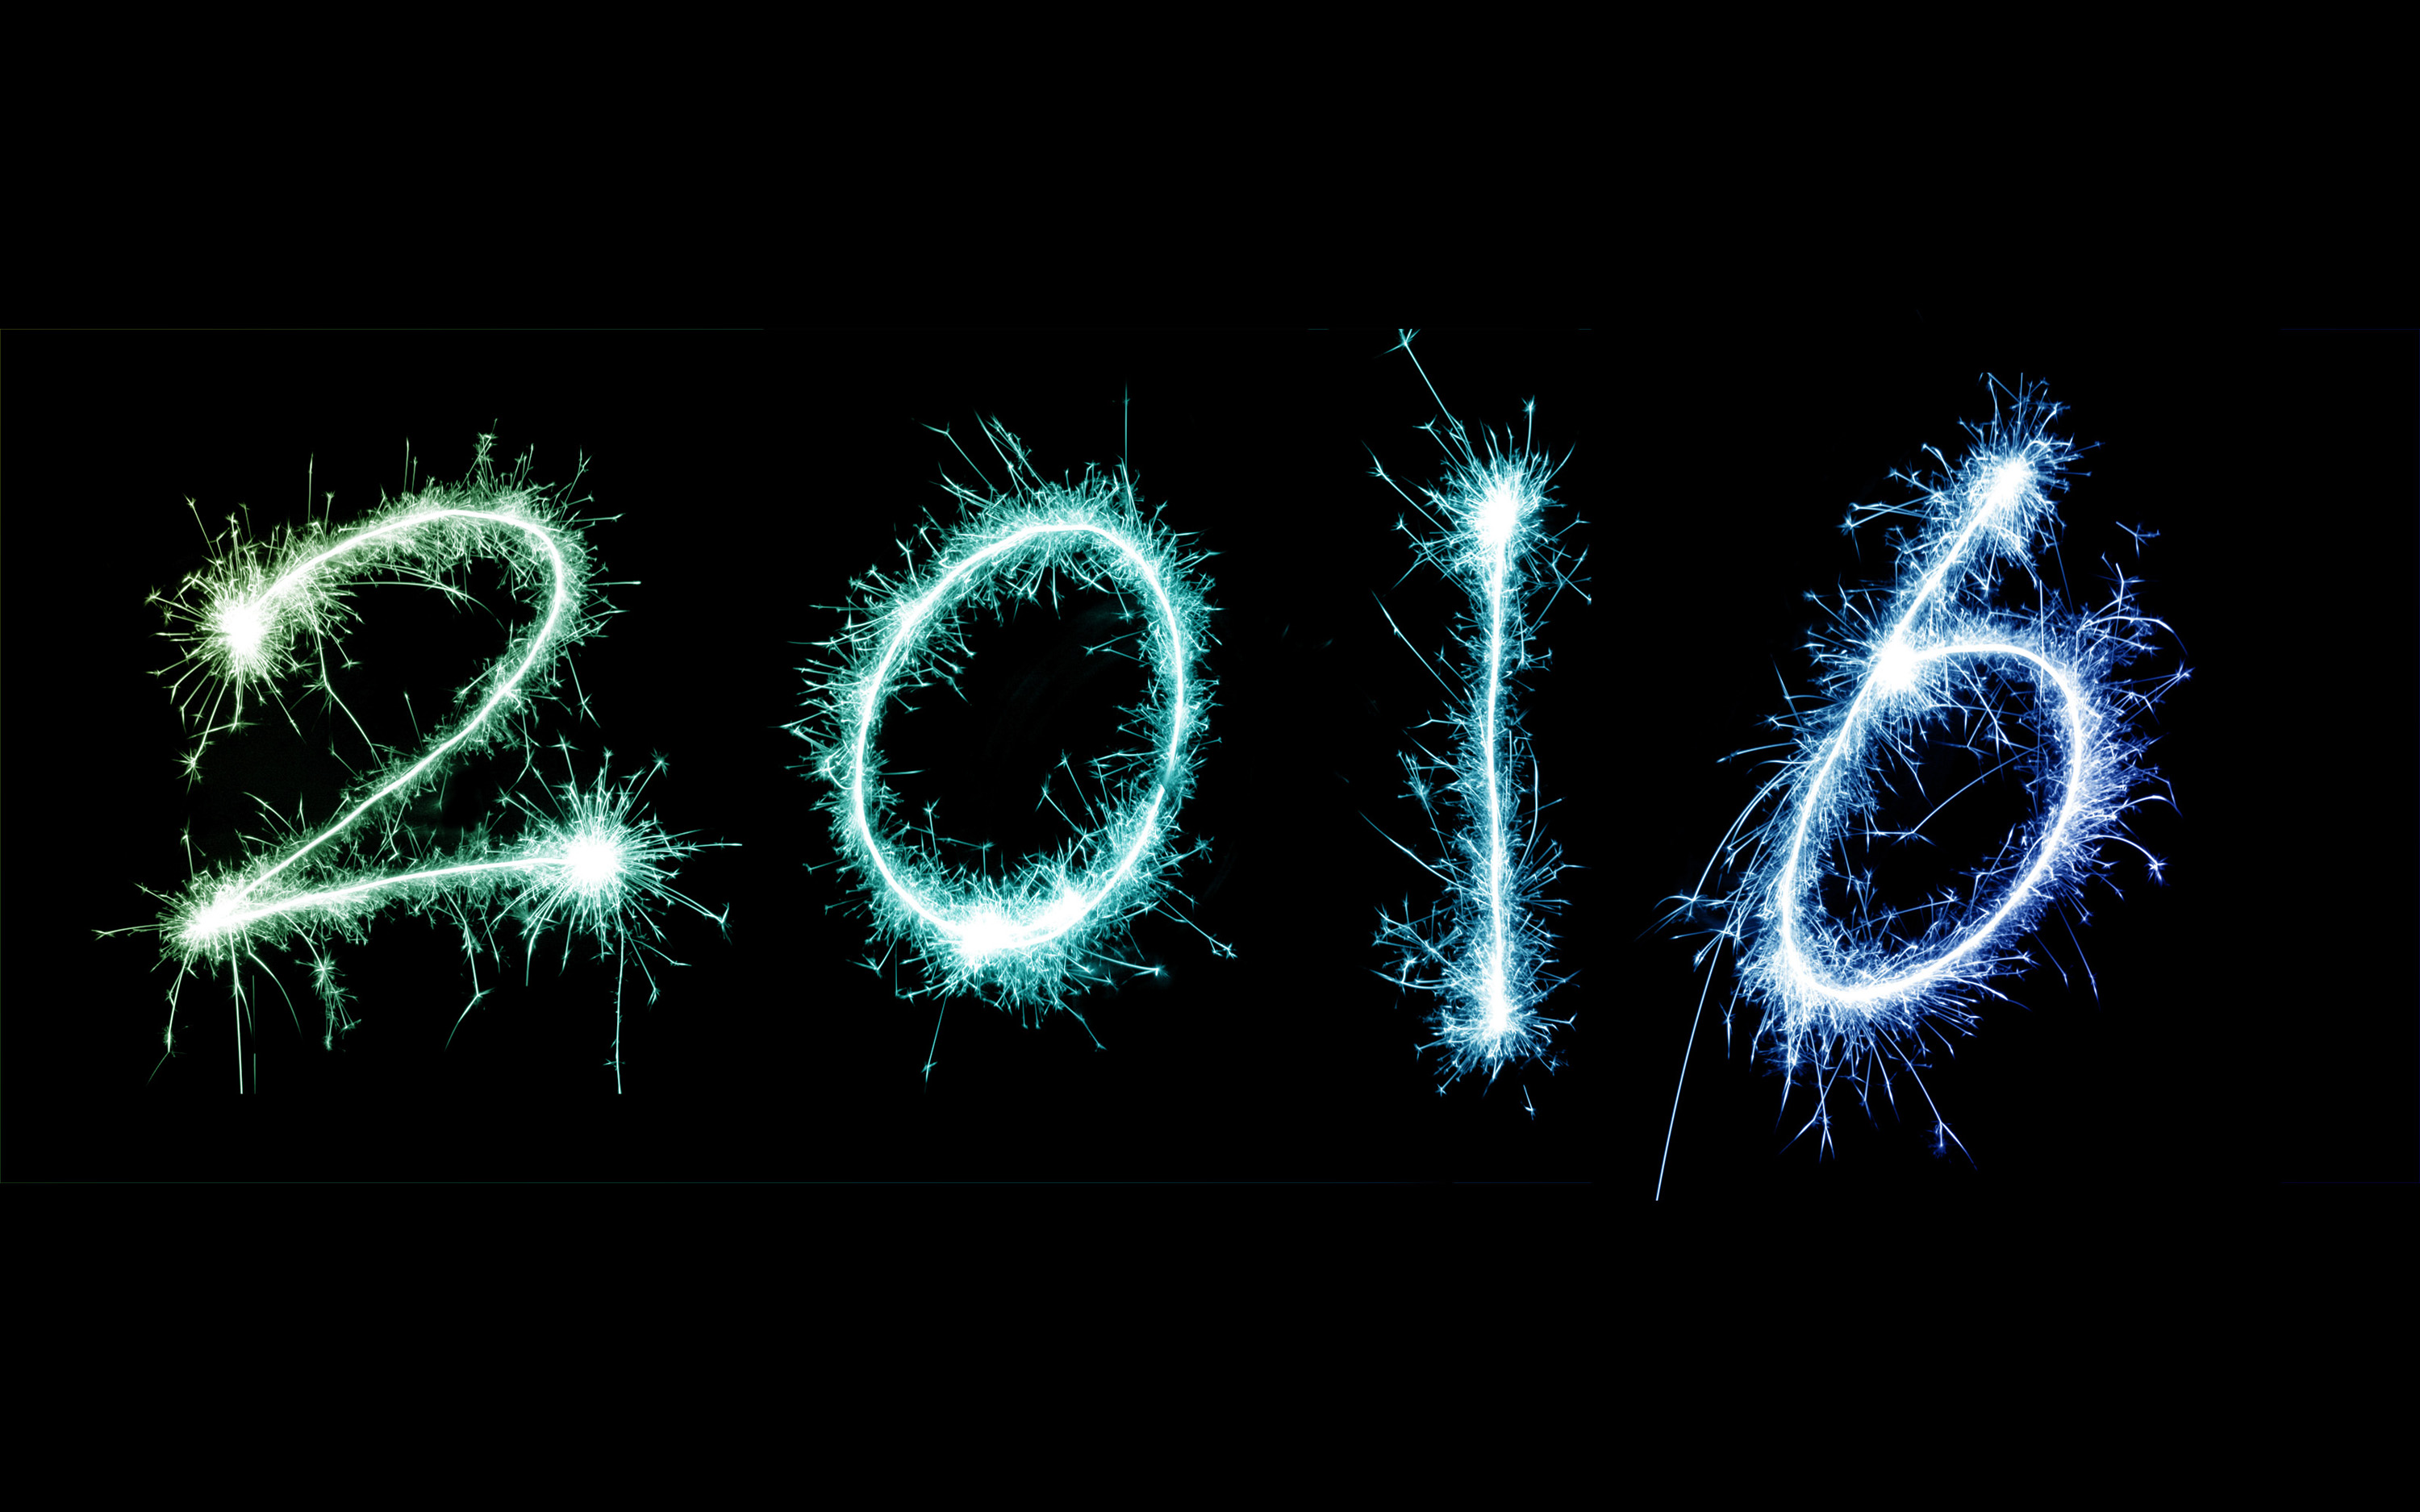 2016 New Year celebration display with the date outlined with fiery sparklers in green and blue on a black background